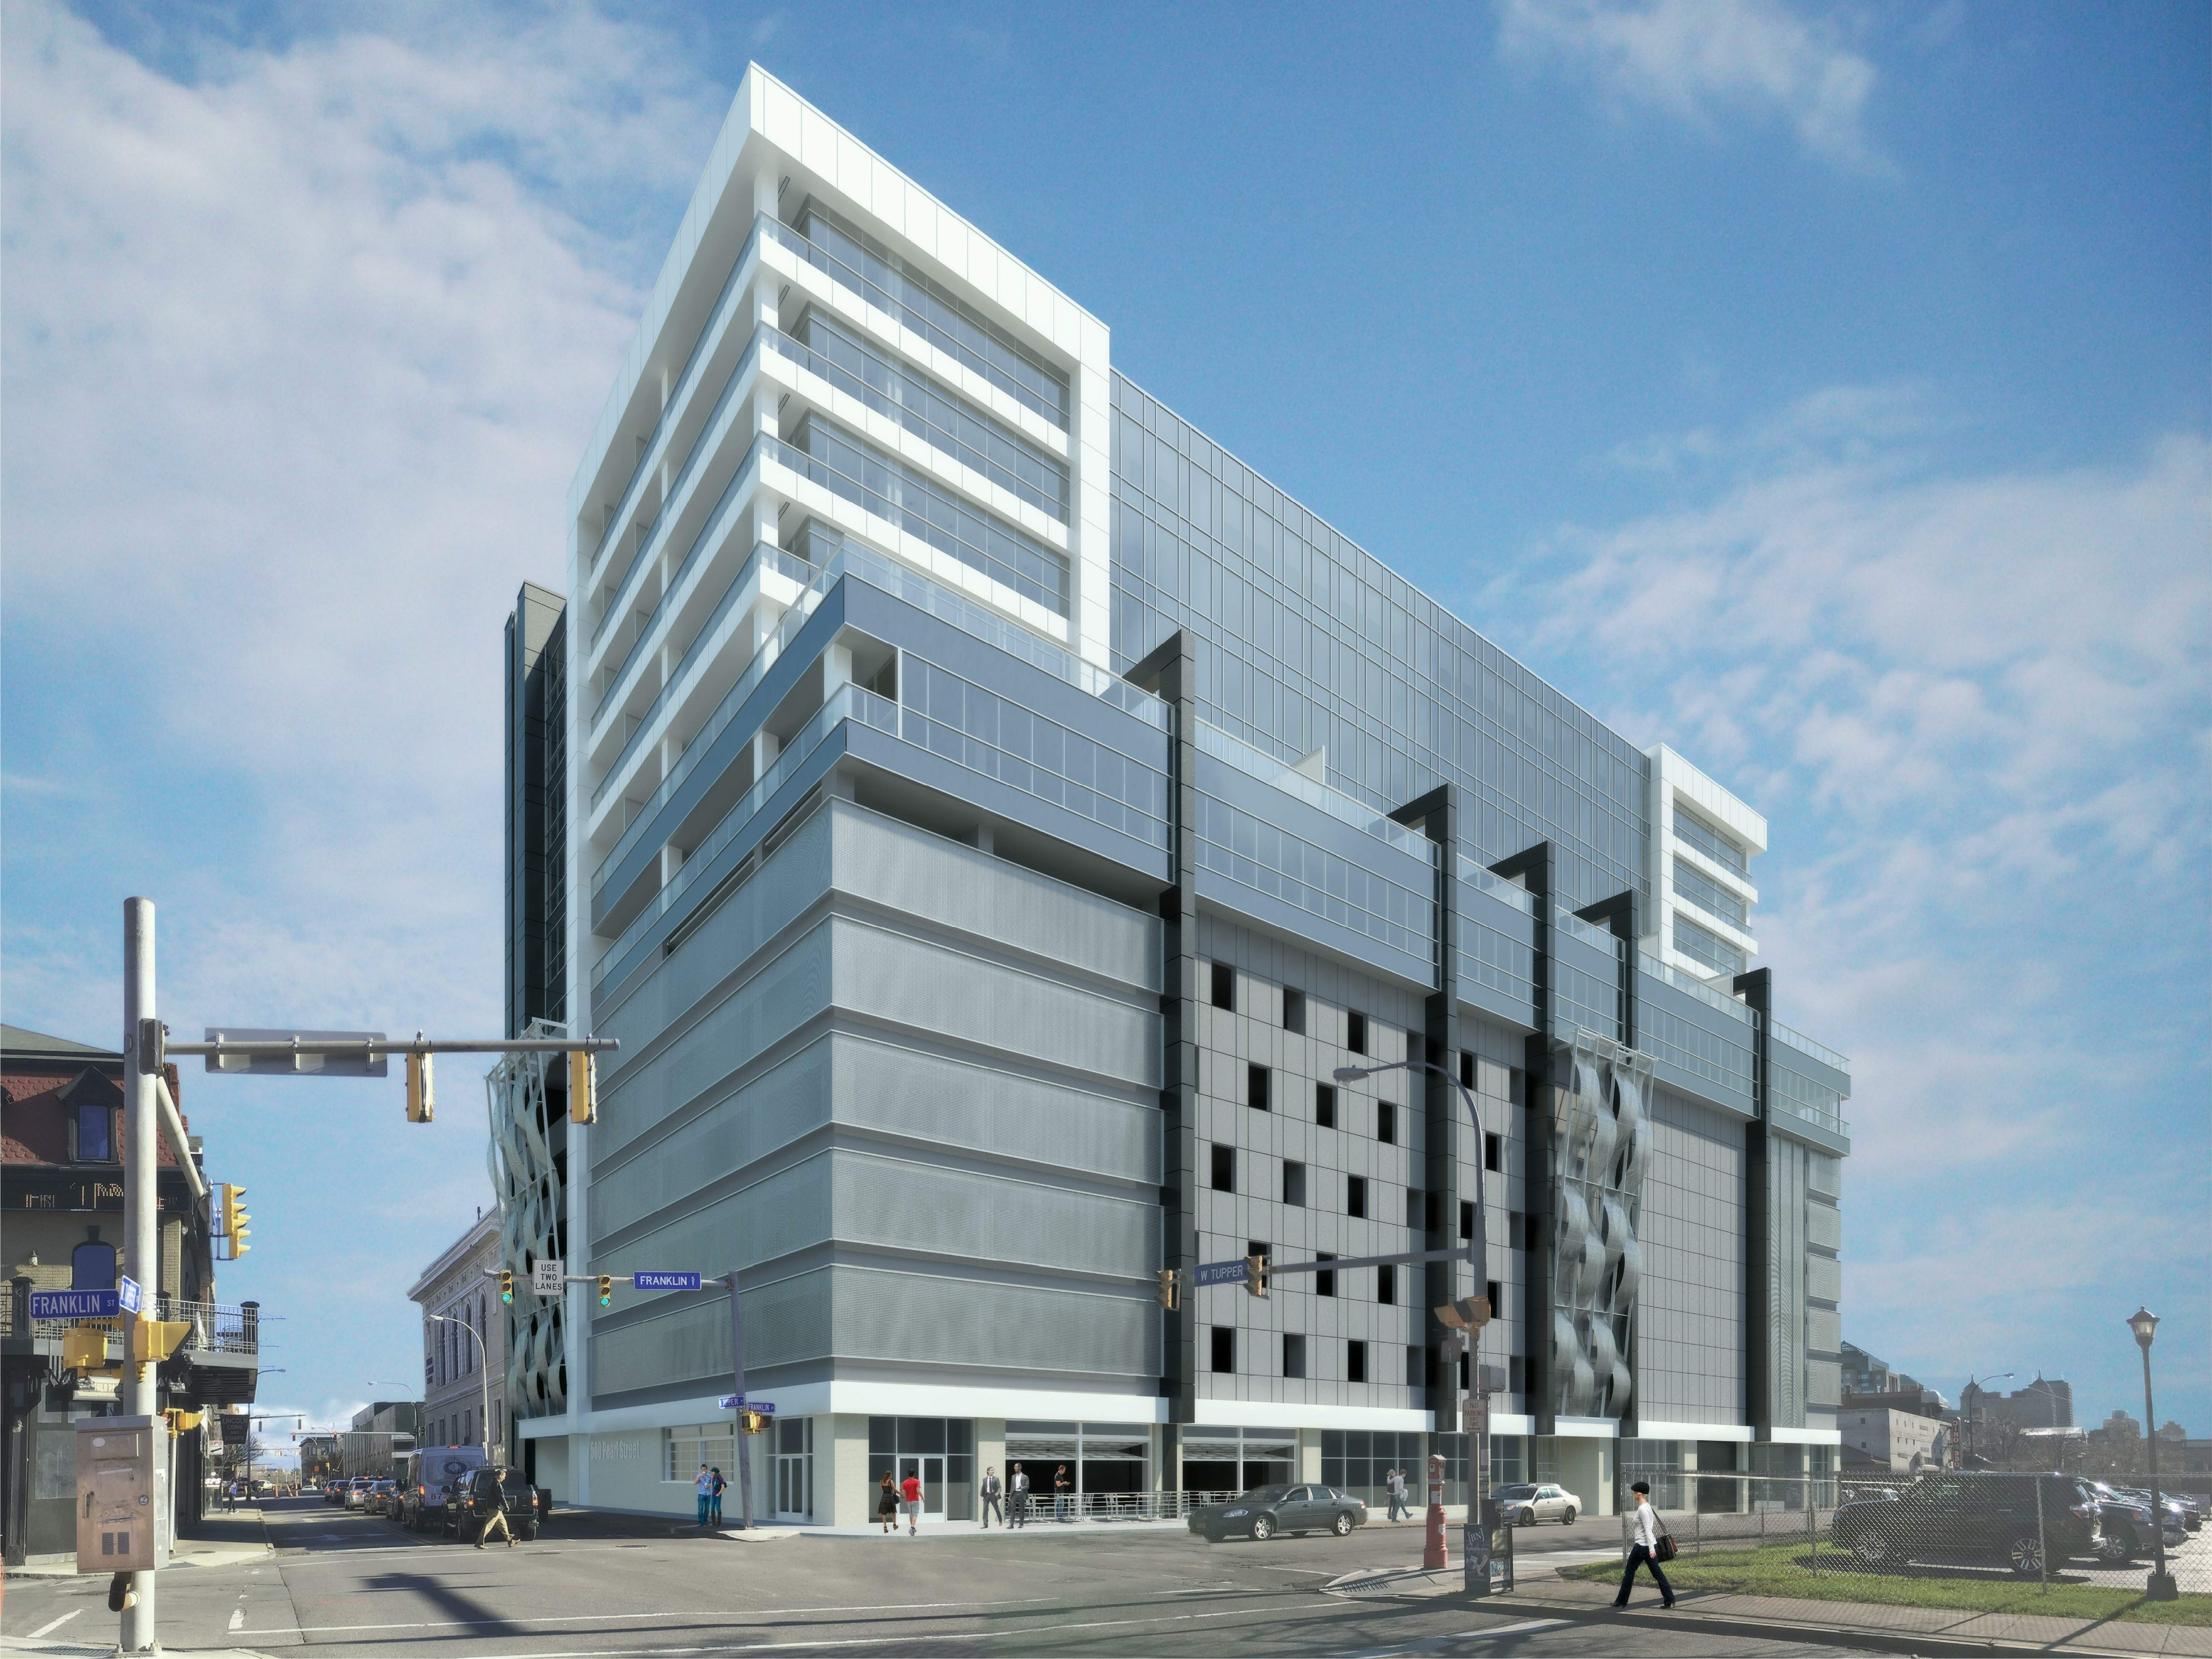 Rendering of the planned hotel/apartment project at the corner of Franklin and Tupper streets in Buffalo.